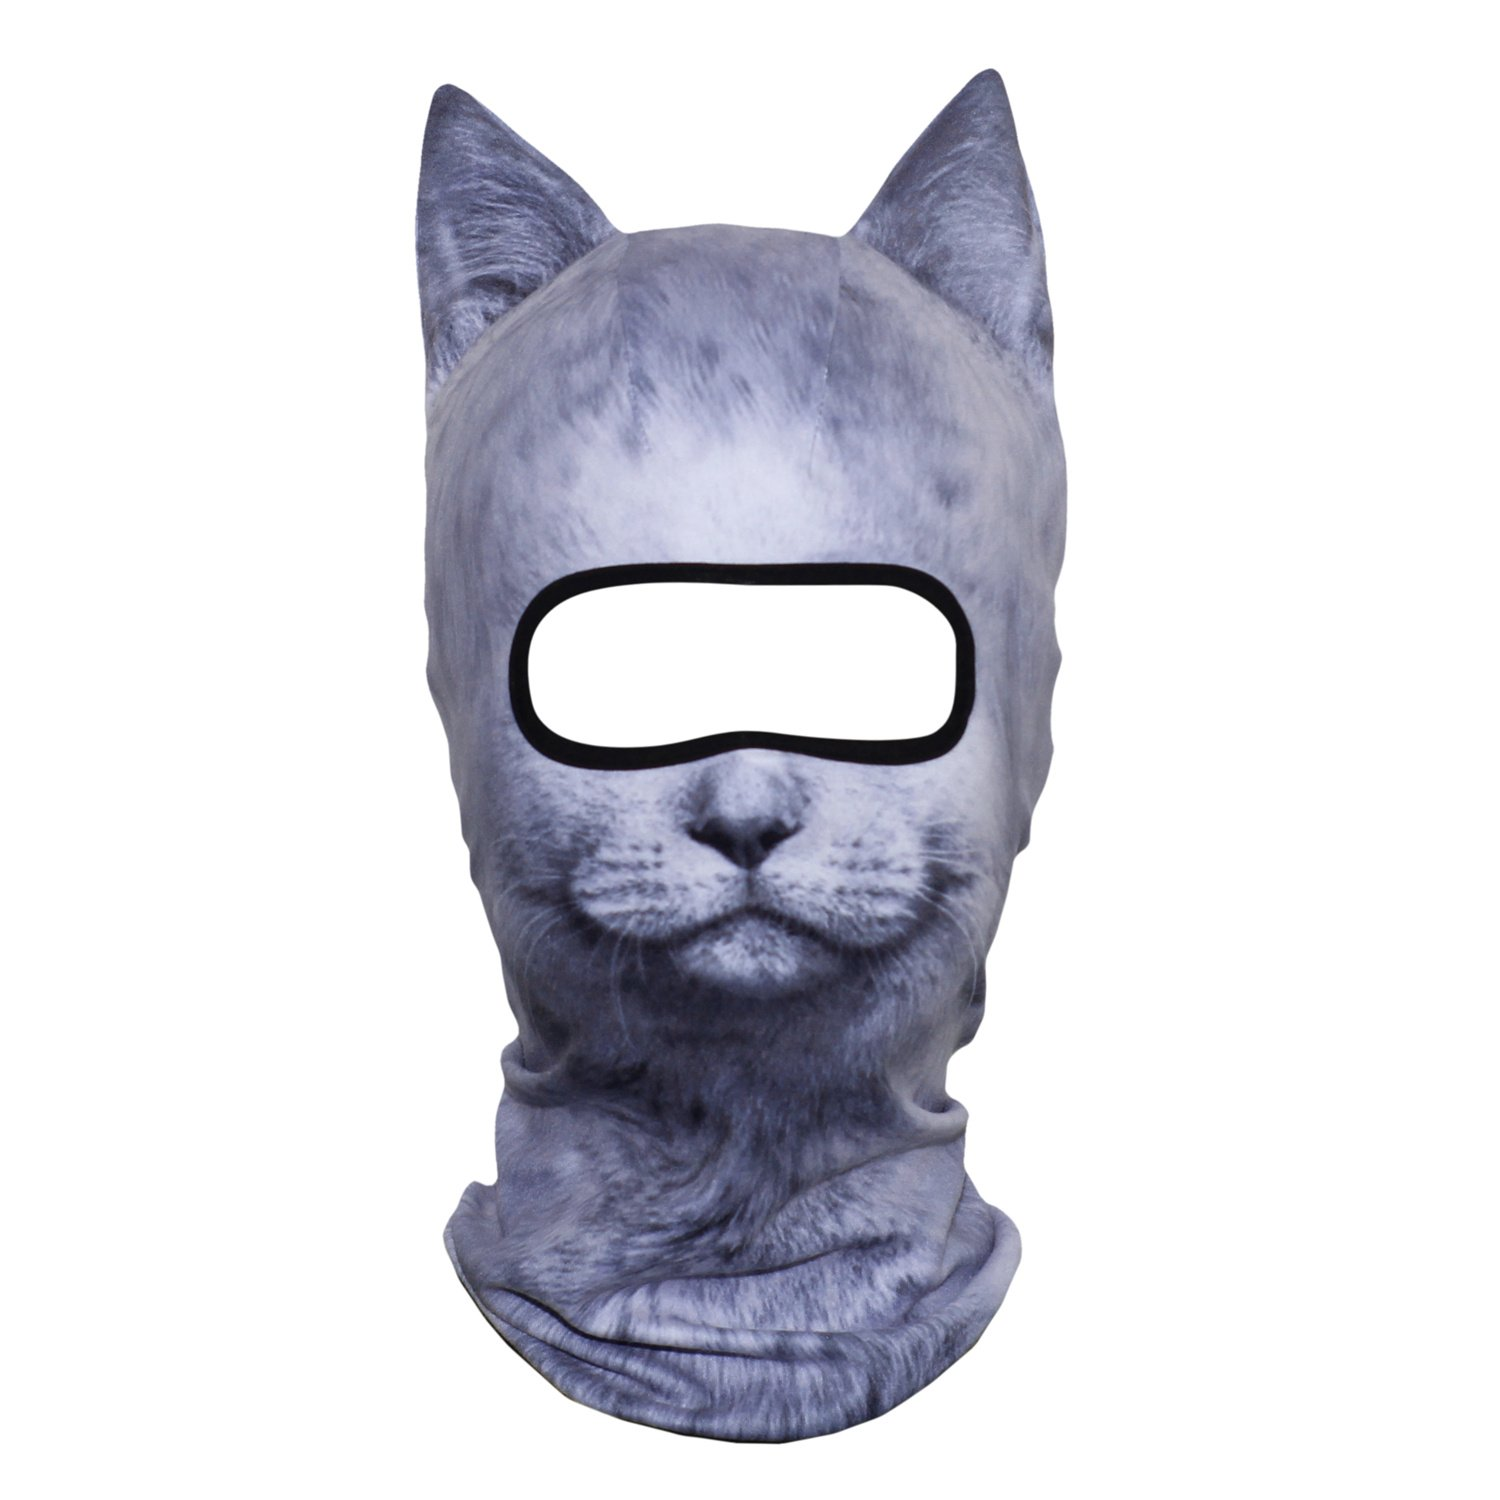 AXBXCX 3D Face Mask Animal Ears Fleece Thermal Neck Warmer Windproof Protection for Ski Snowboard Snowmobile Halloween Winter Cold Weather British Shorthair